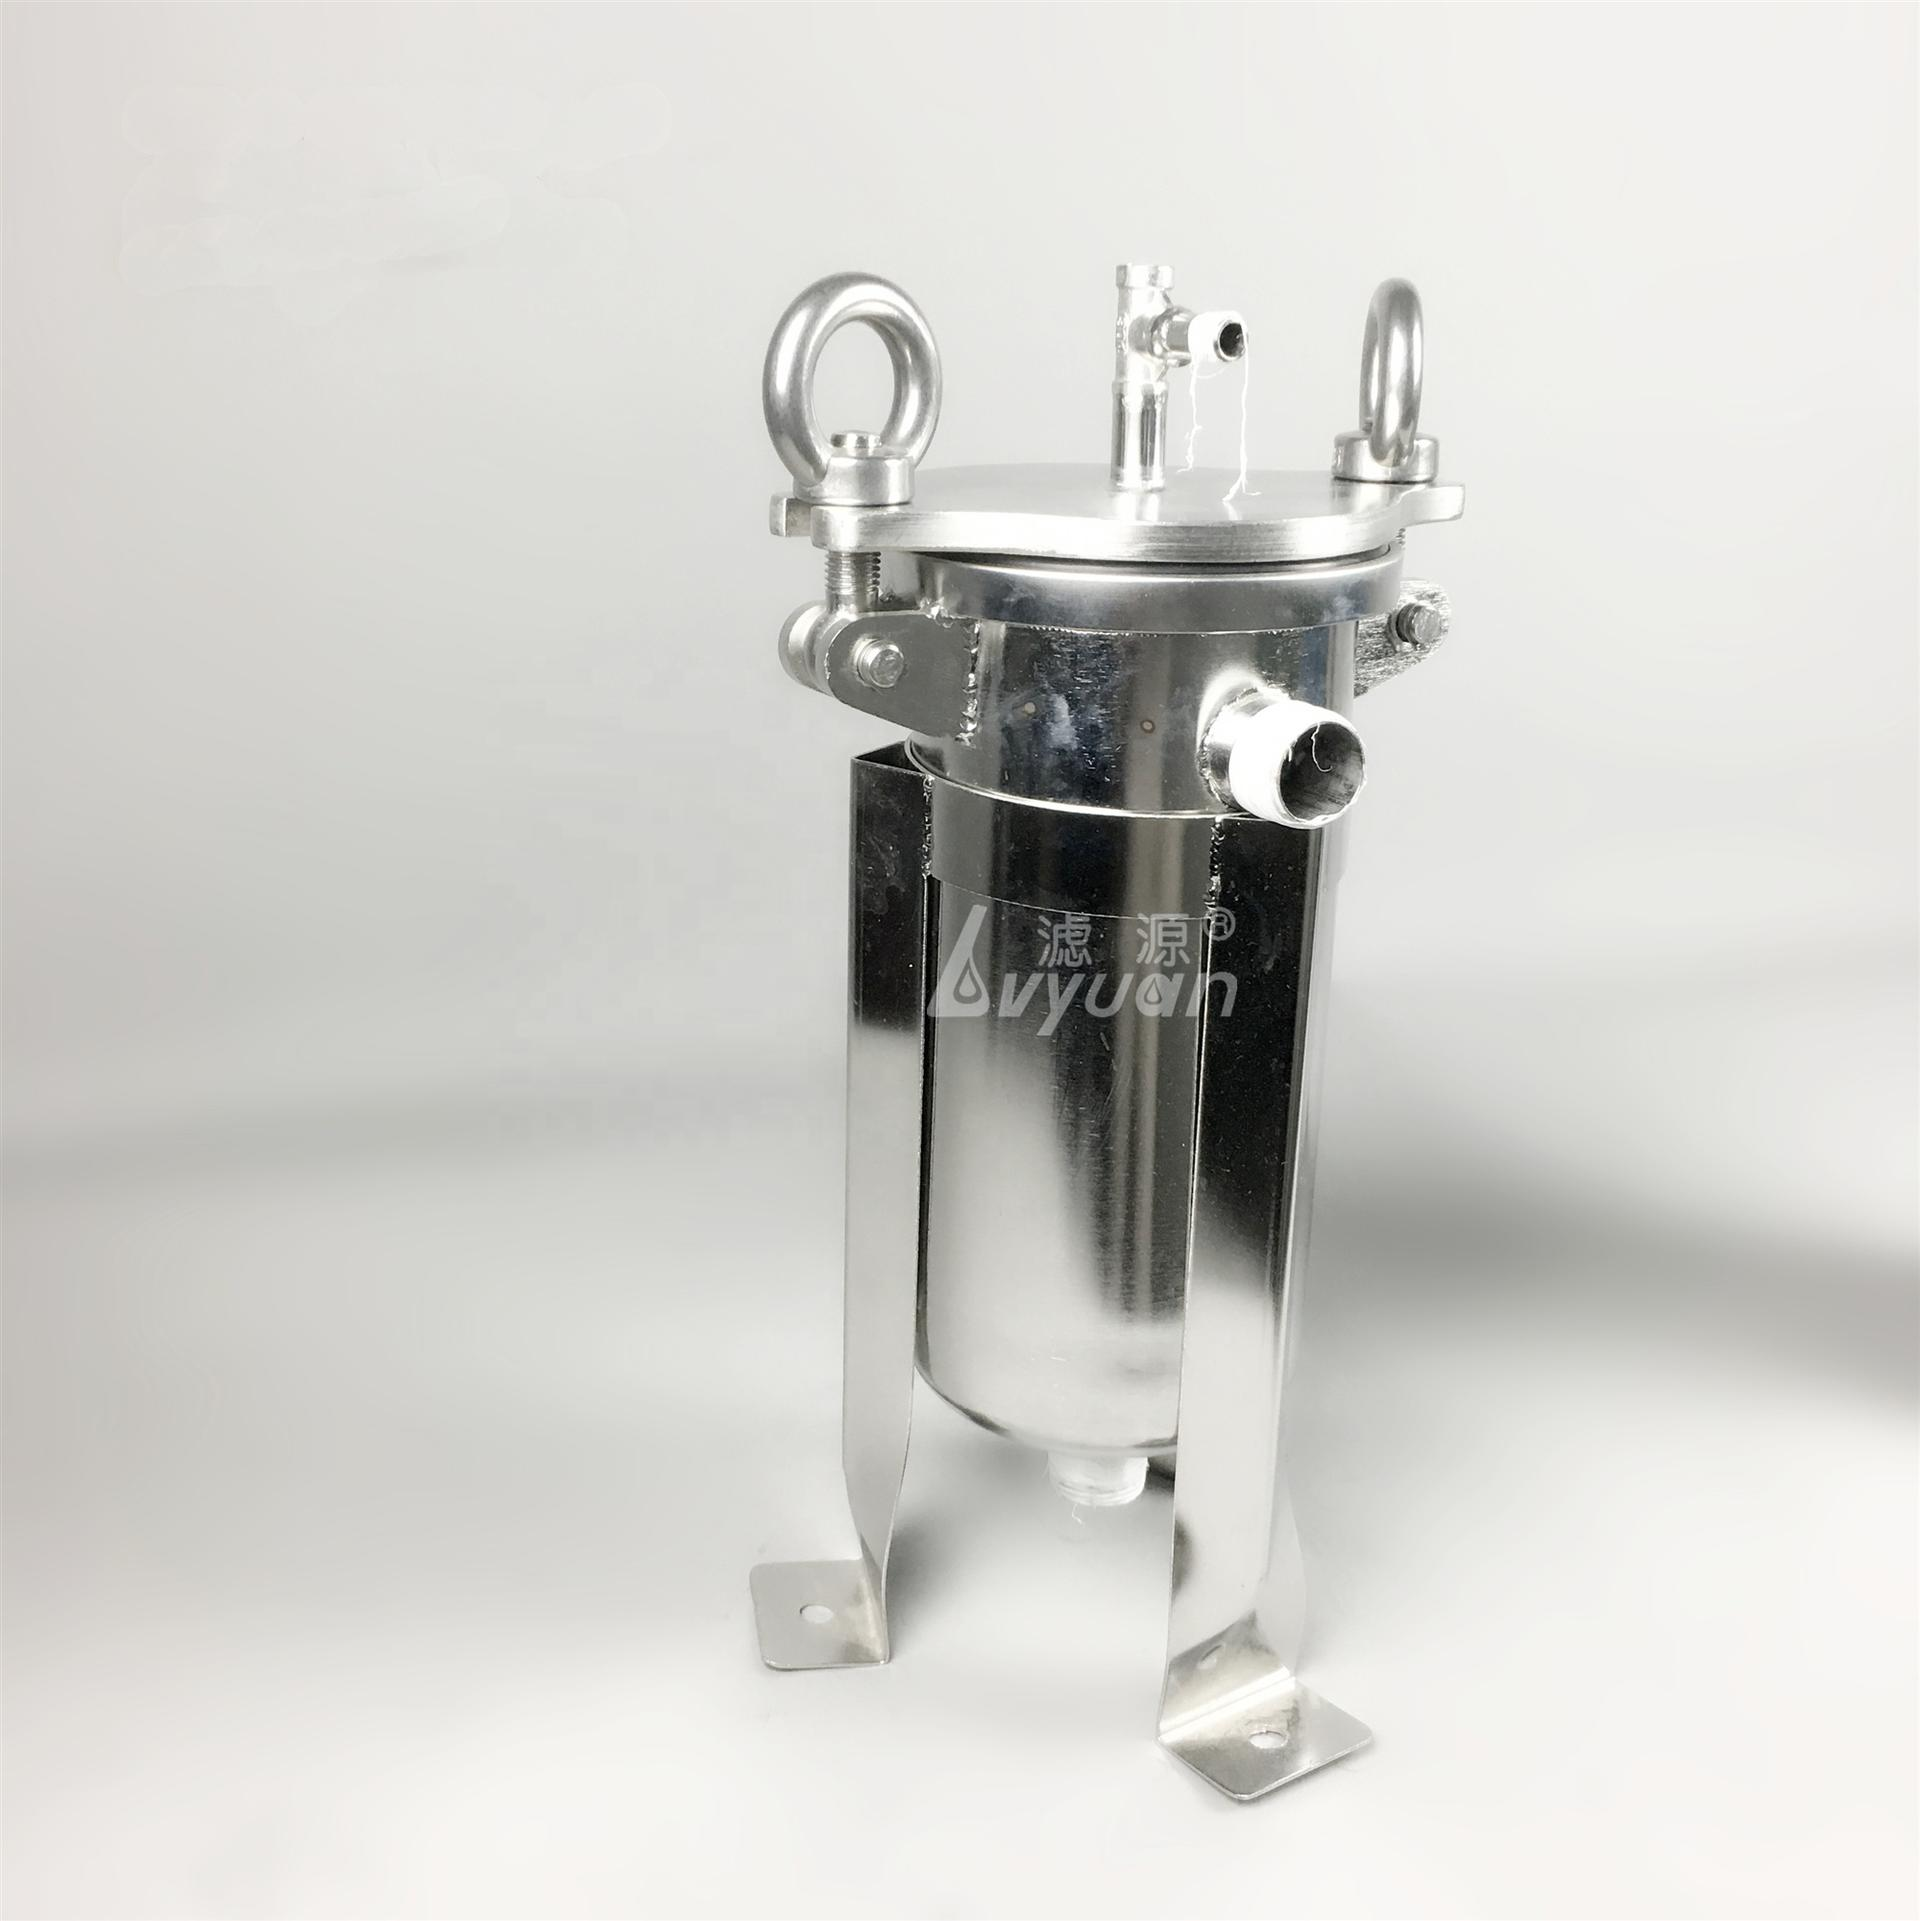 ss304 ss316 food grade water bag filter stainless steel bag filter housing for liquid filtration